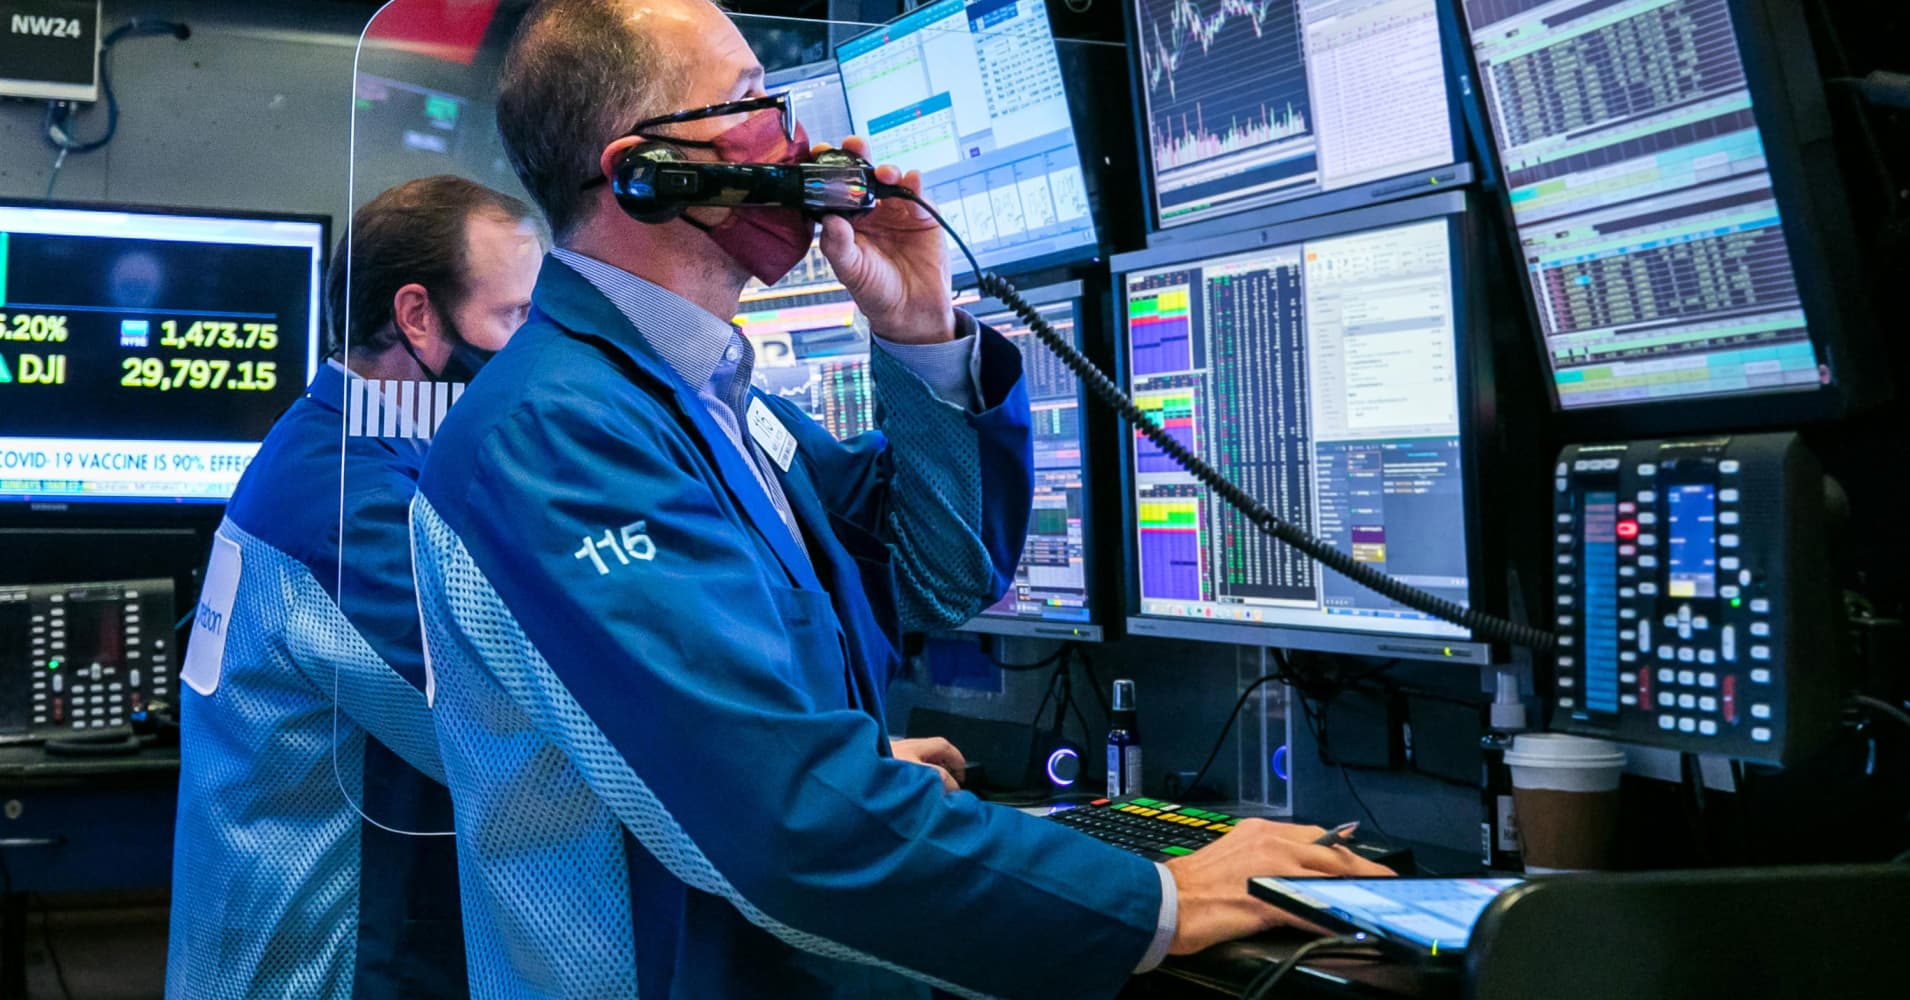 a person using a laptop: U.S. stock futures rose early Friday after another record-breaking session on Wall Street. CNBC's Rahel Solomon reports.